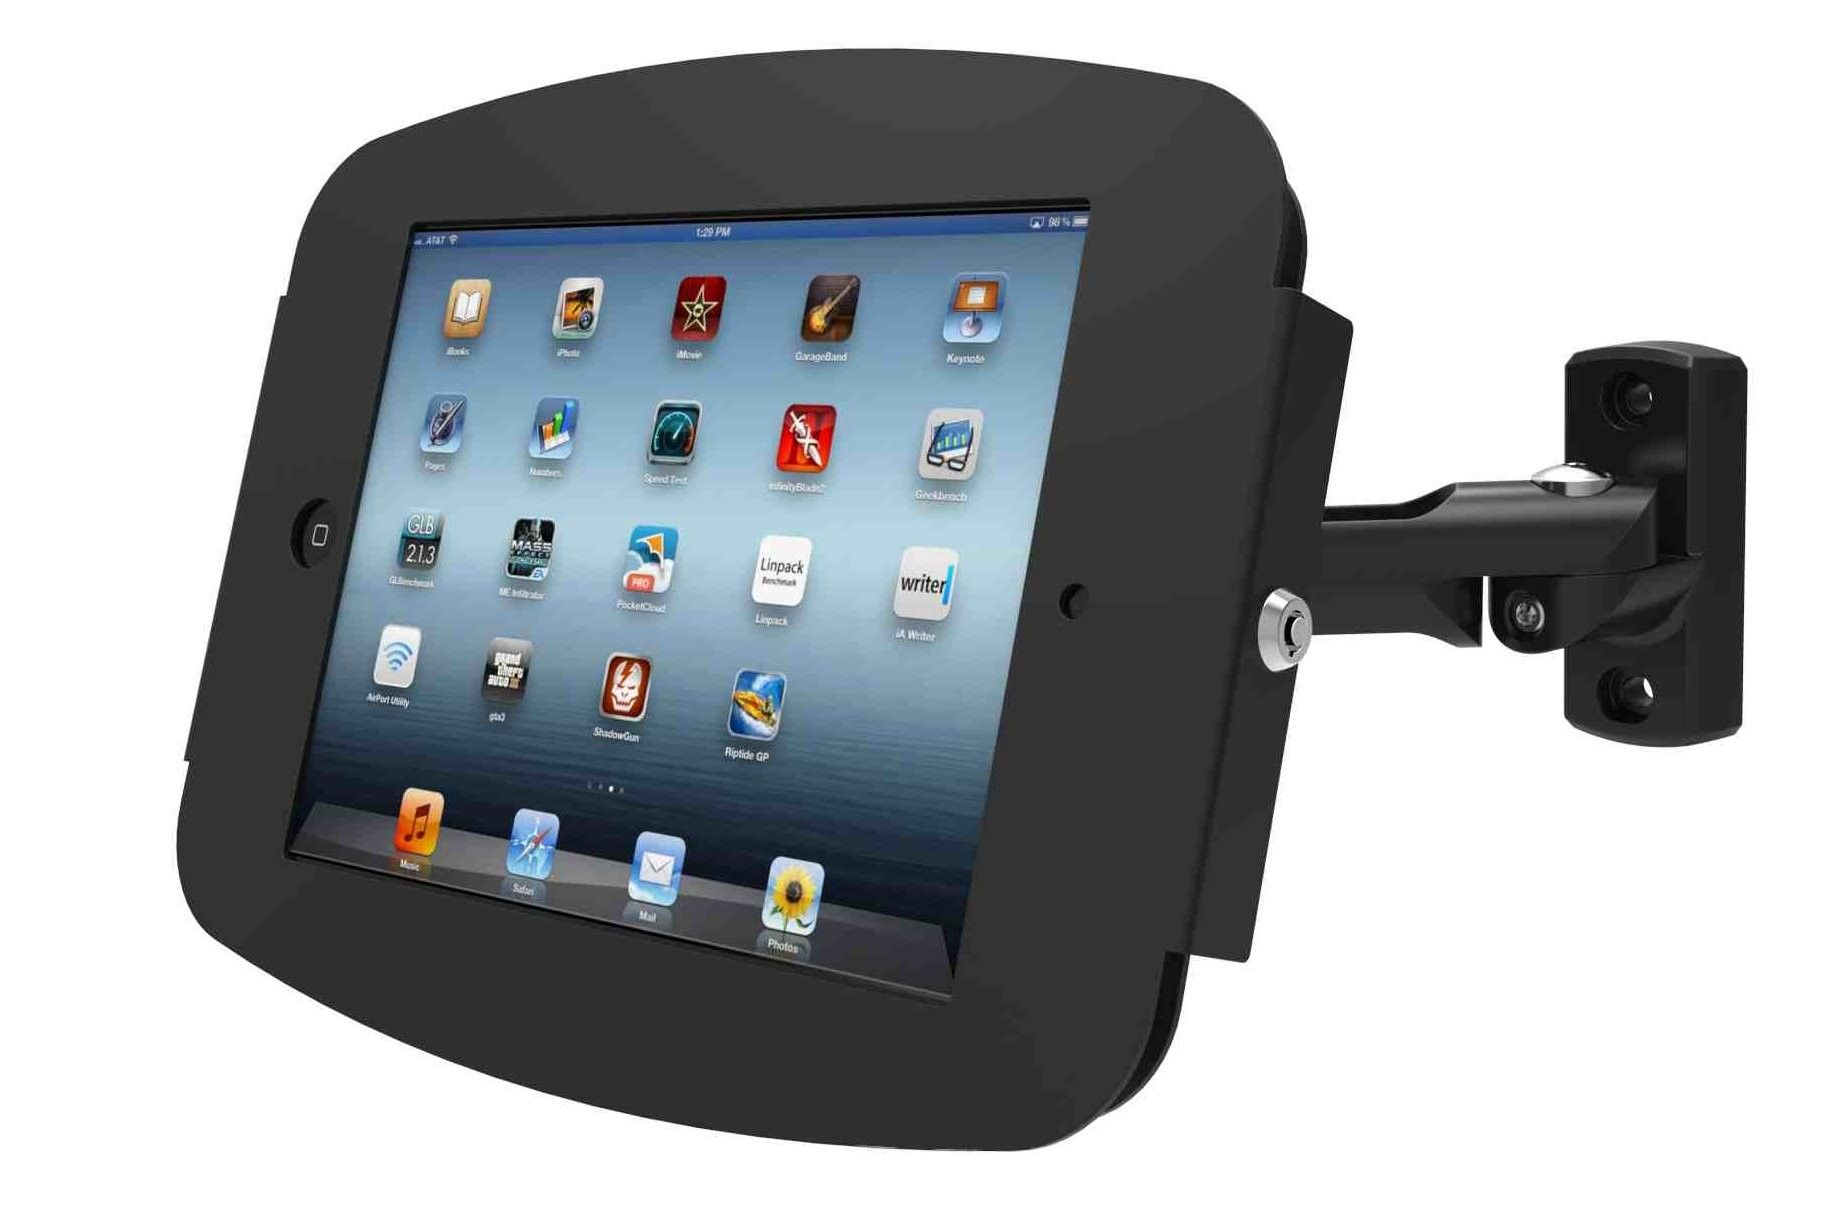 Lockable Ipad Wall Mounts Painted To Match The Space Tablet Accessories Ipad Mini Ipad